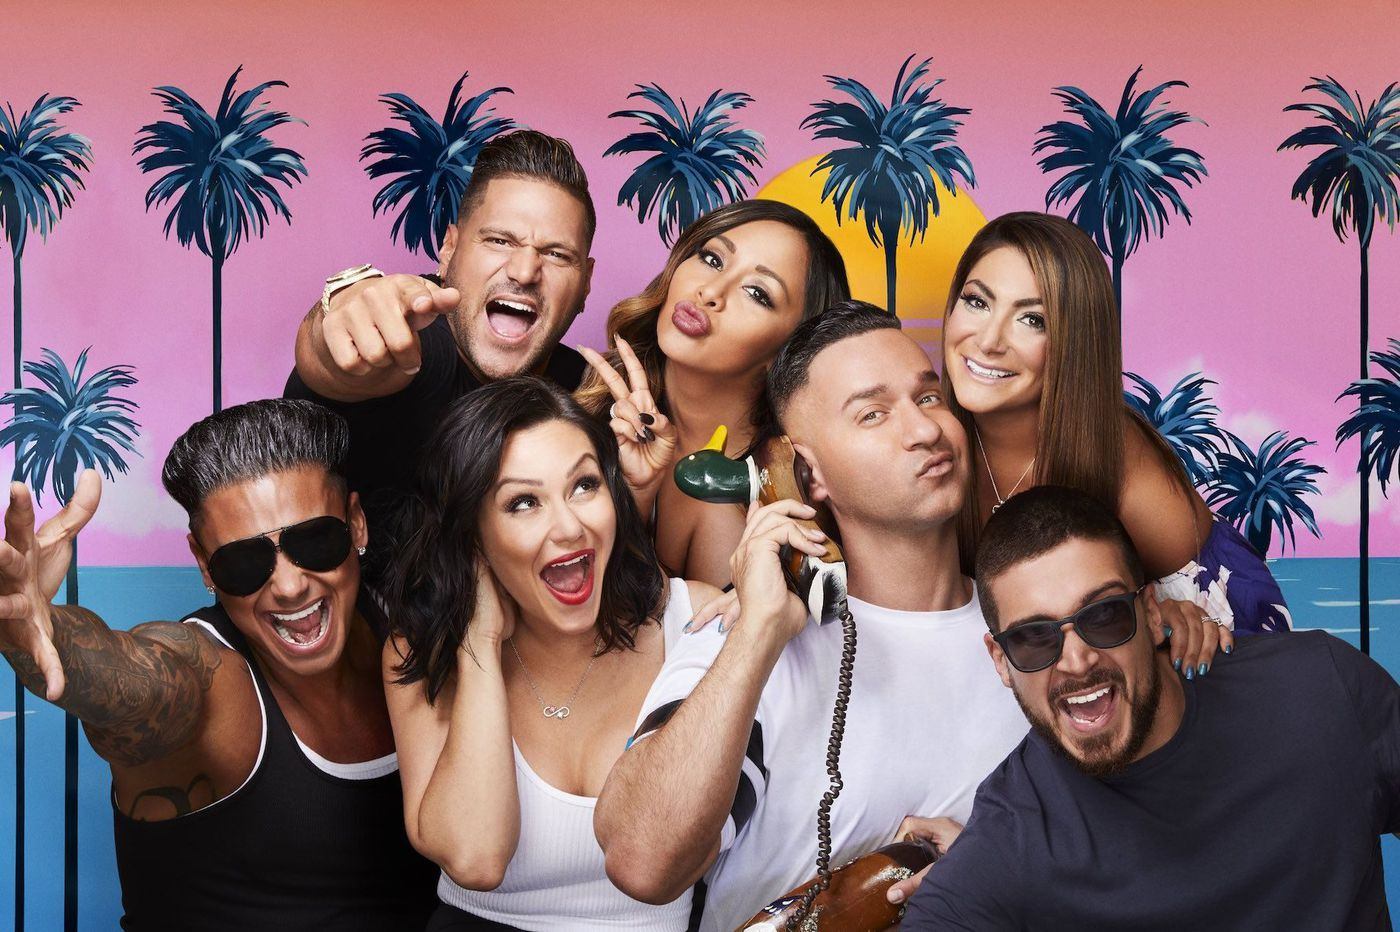 Mayor, chief of police say 'Jersey Shore' won't be filming in Wildwood